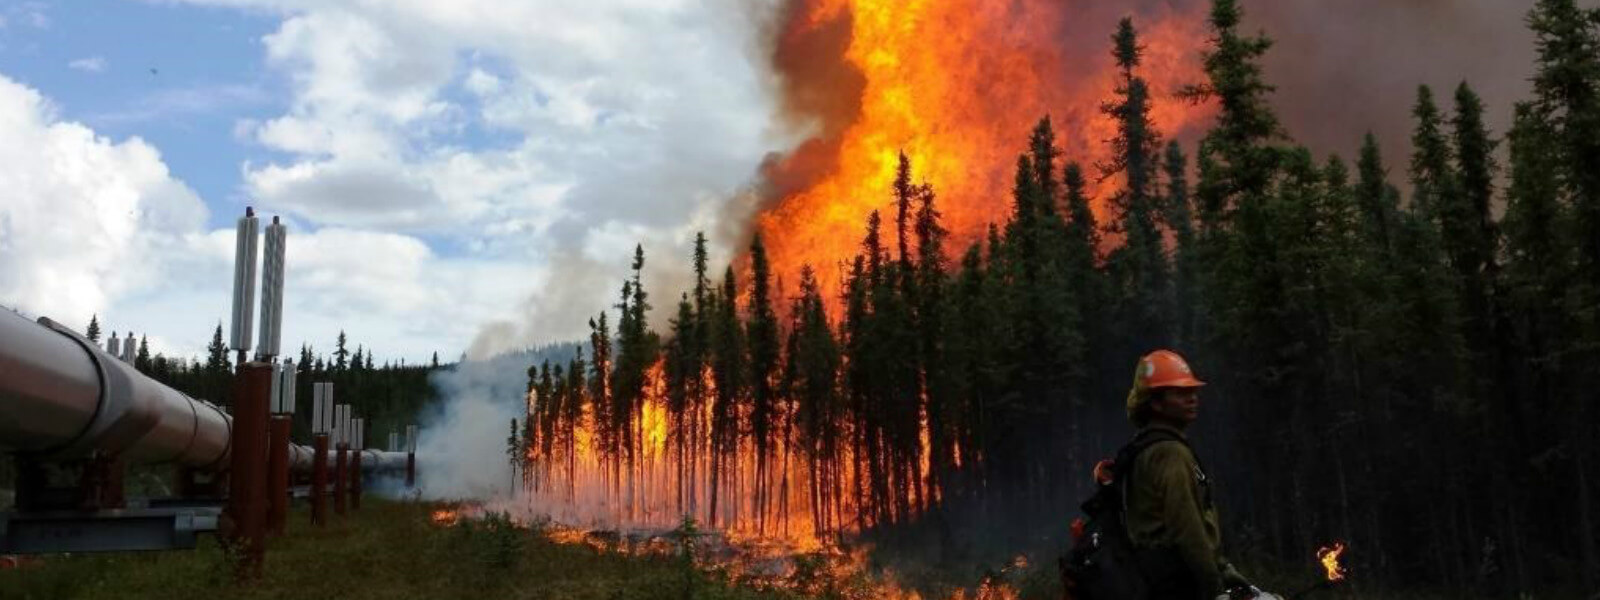 The Aggie Creek Fire near Fairbanks, Alaska Credit: Philip Spor